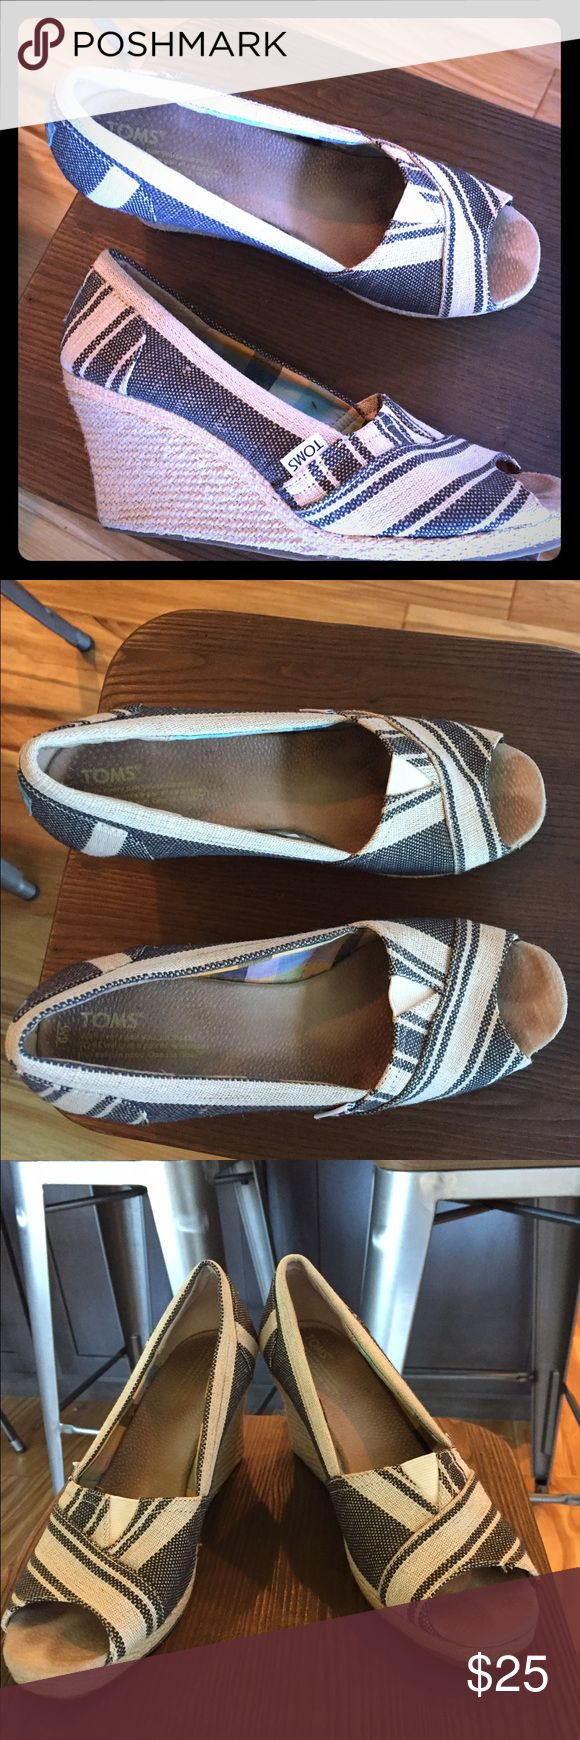 Toms hog heel shoes Adorable women's size 9 Toms high heel shoes. Dress up or dress down. So comfortable! Worn 3 times. TOMS Shoes Heels